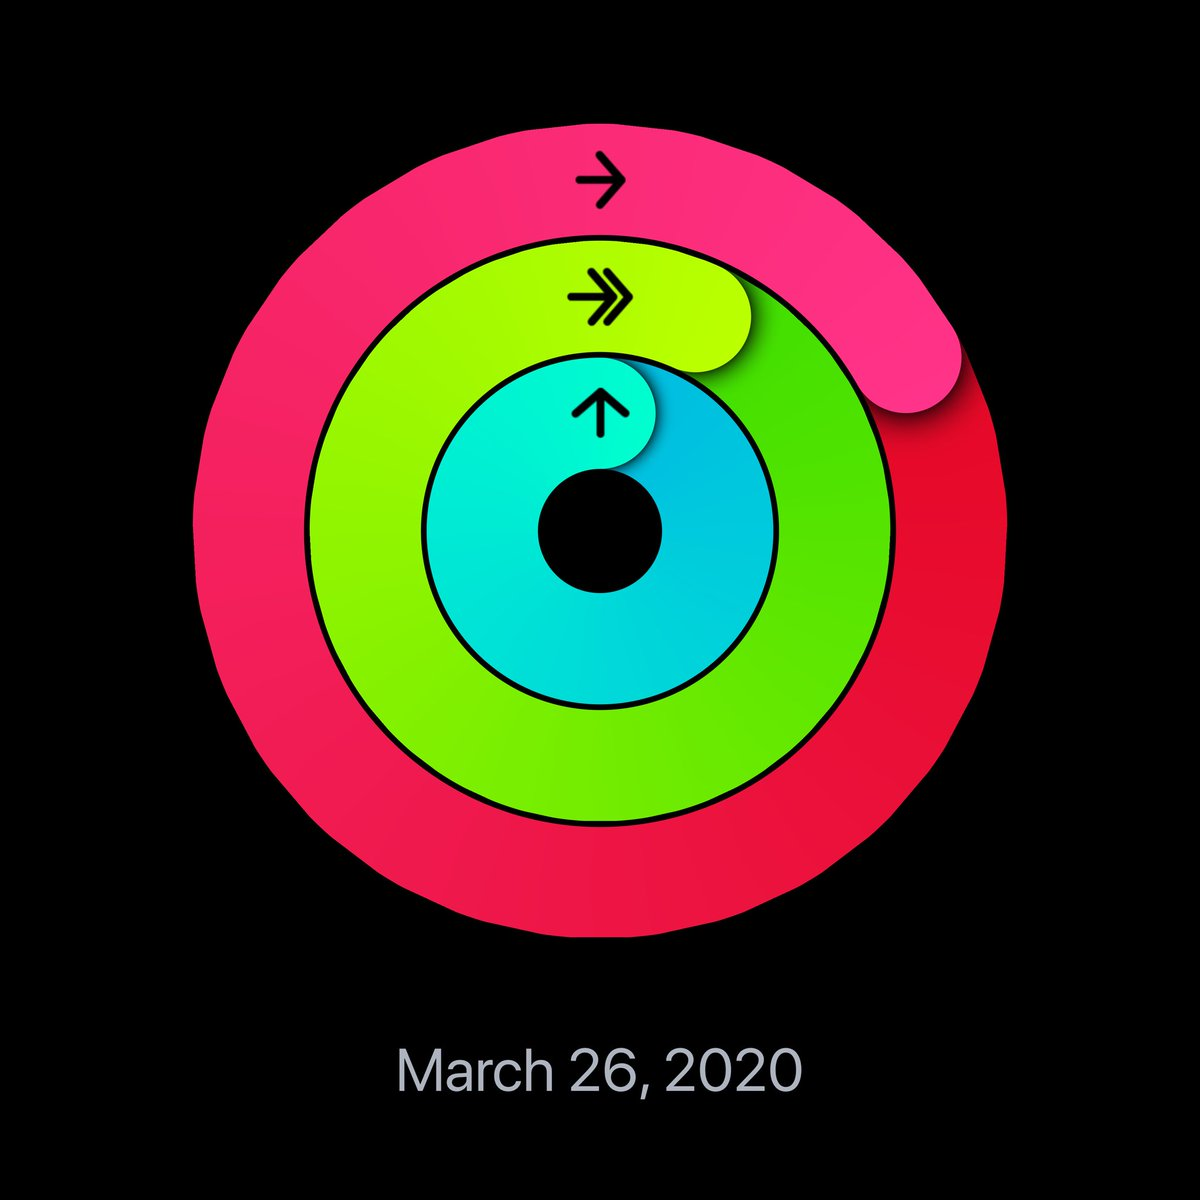 Loving ⁦@Apple⁩ Activity Rings on my #AppleWatch. My goal is to close my rings everyday. What's your plan to stay active?  Let's share and support each other! #WhyCrane #WeAreCrane #ADE2019 #ShowMeYourRings<br>http://pic.twitter.com/6wxwBZw2Rm